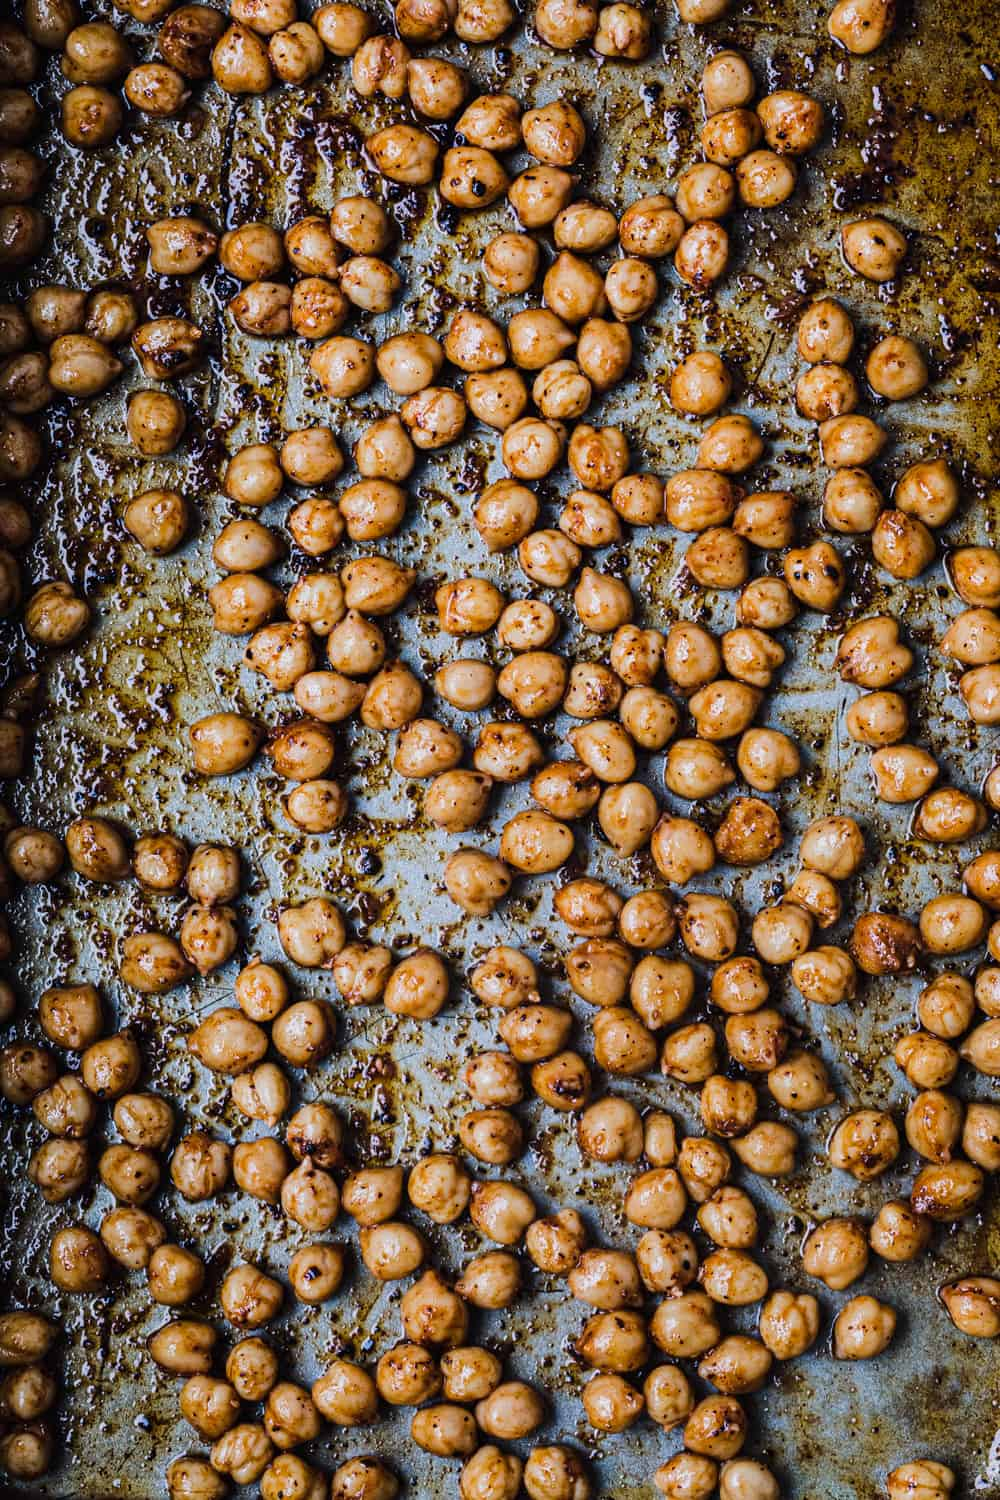 crispy chickpeas, also called garbanzo beans, in process and pre-oven shot